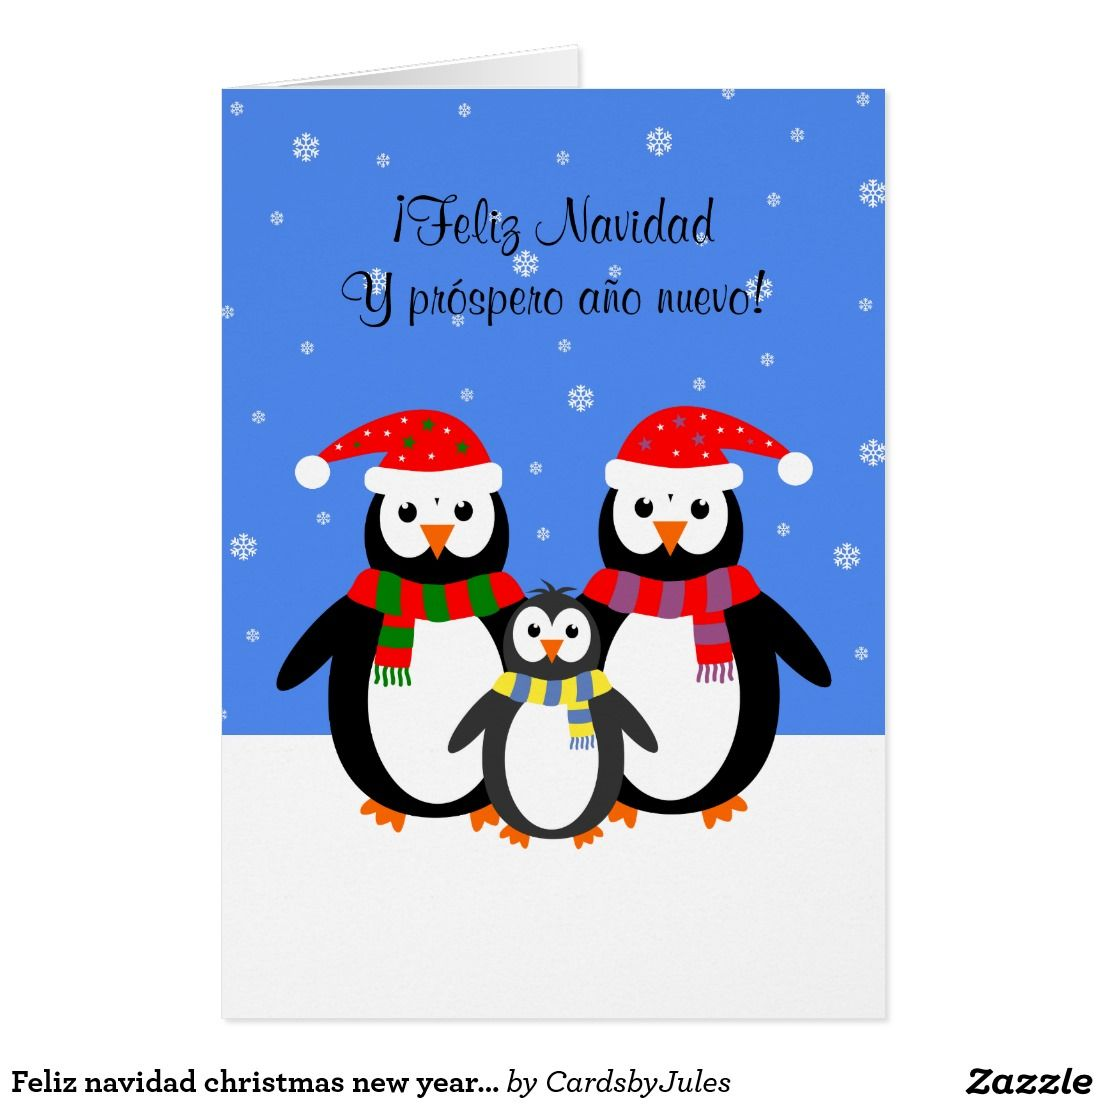 Feliz navidad christmas new year penguins spanish greetings card feliz navidad christmas new year penguins spanish greetings card m4hsunfo